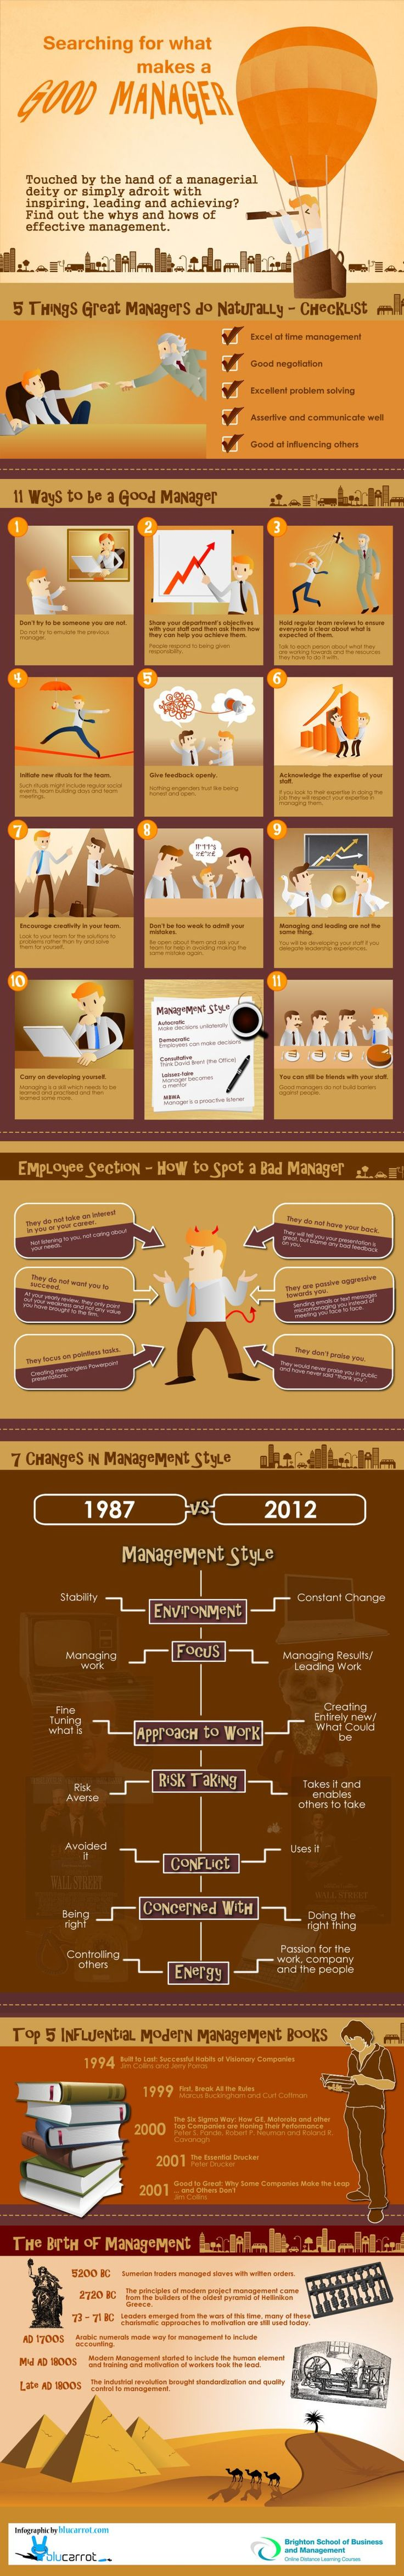 How to Be a Great Manager [INFOGRAPHIC] http://theundercoverrecruiter.com/good-manager-infographic/ #careers #BusinessManagementTips